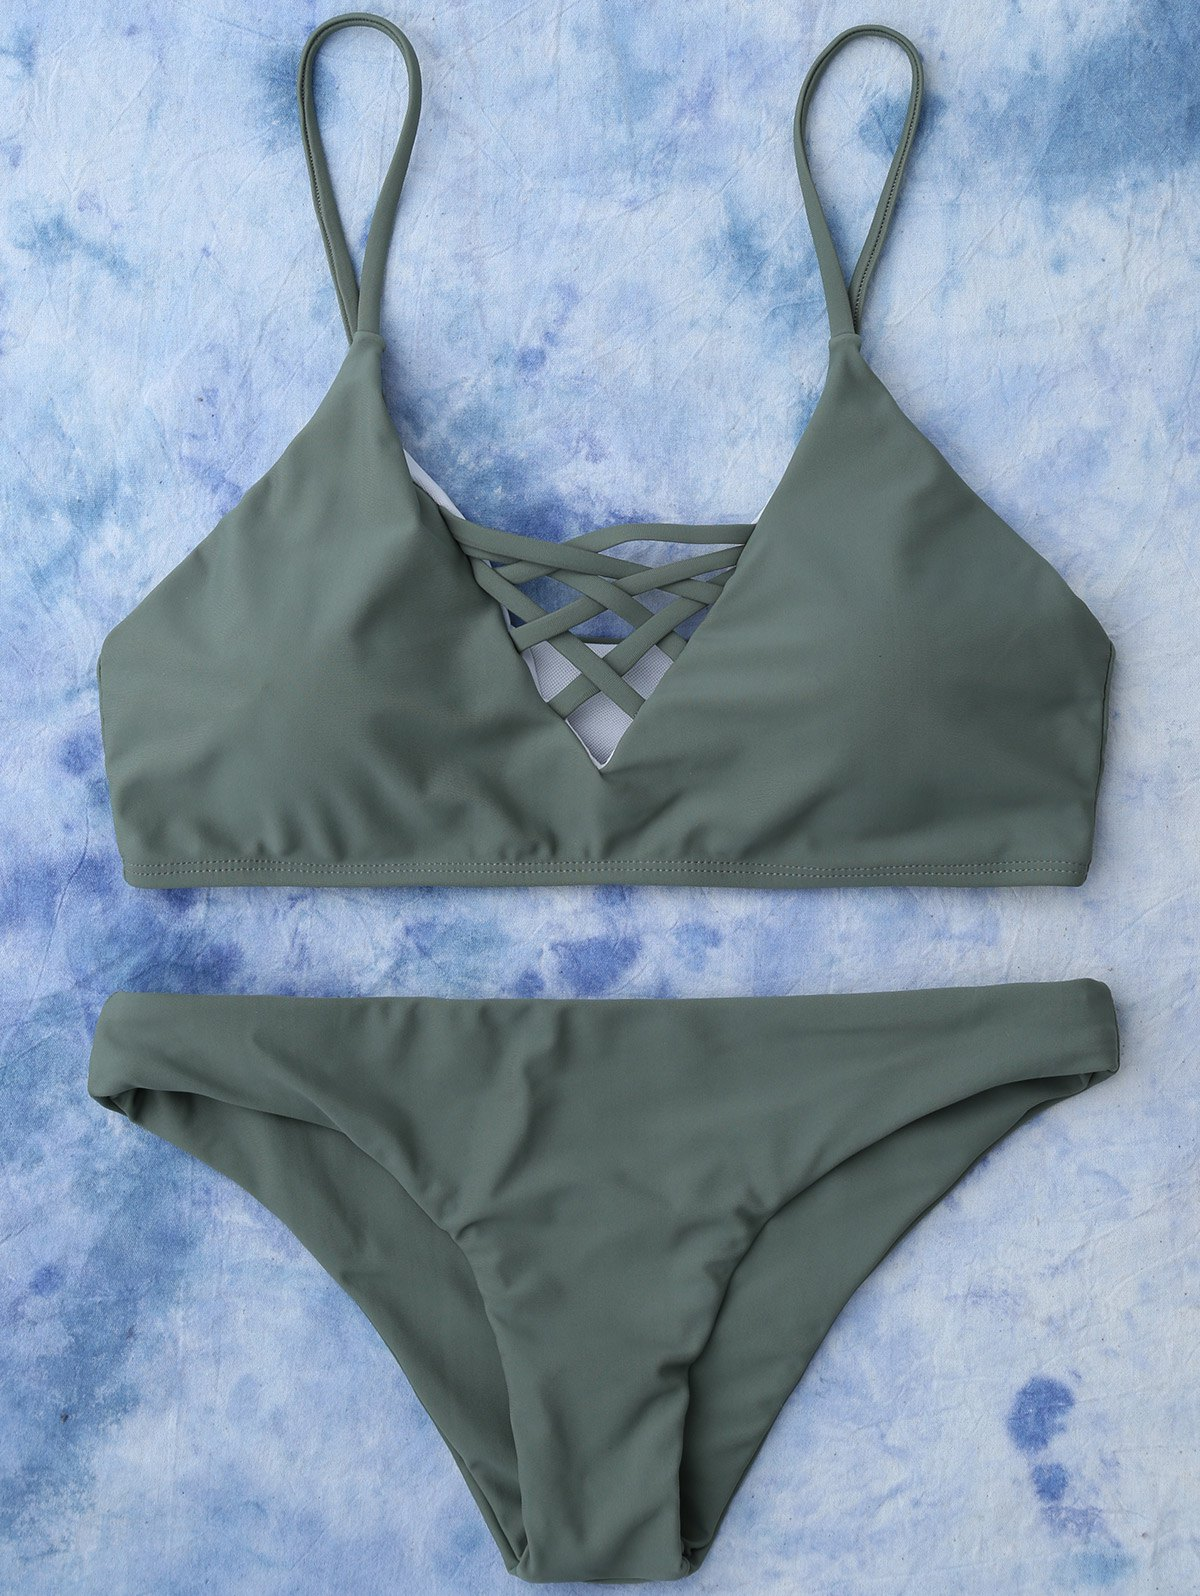 Lace Up Cami Bikini SwimwearWOMEN<br><br>Size: L; Color: ARMY GREEN; Swimwear Type: Bikini; Gender: For Women; Material: Nylon,Polyester,Spandex; Bra Style: Padded; Support Type: Wire Free; Neckline: Spaghetti Straps; Pattern Type: Solid; Waist: Low Waisted; Elasticity: Elastic; Weight: 0.2000kg; Package Contents: 1 x Top  1 x Bottoms;